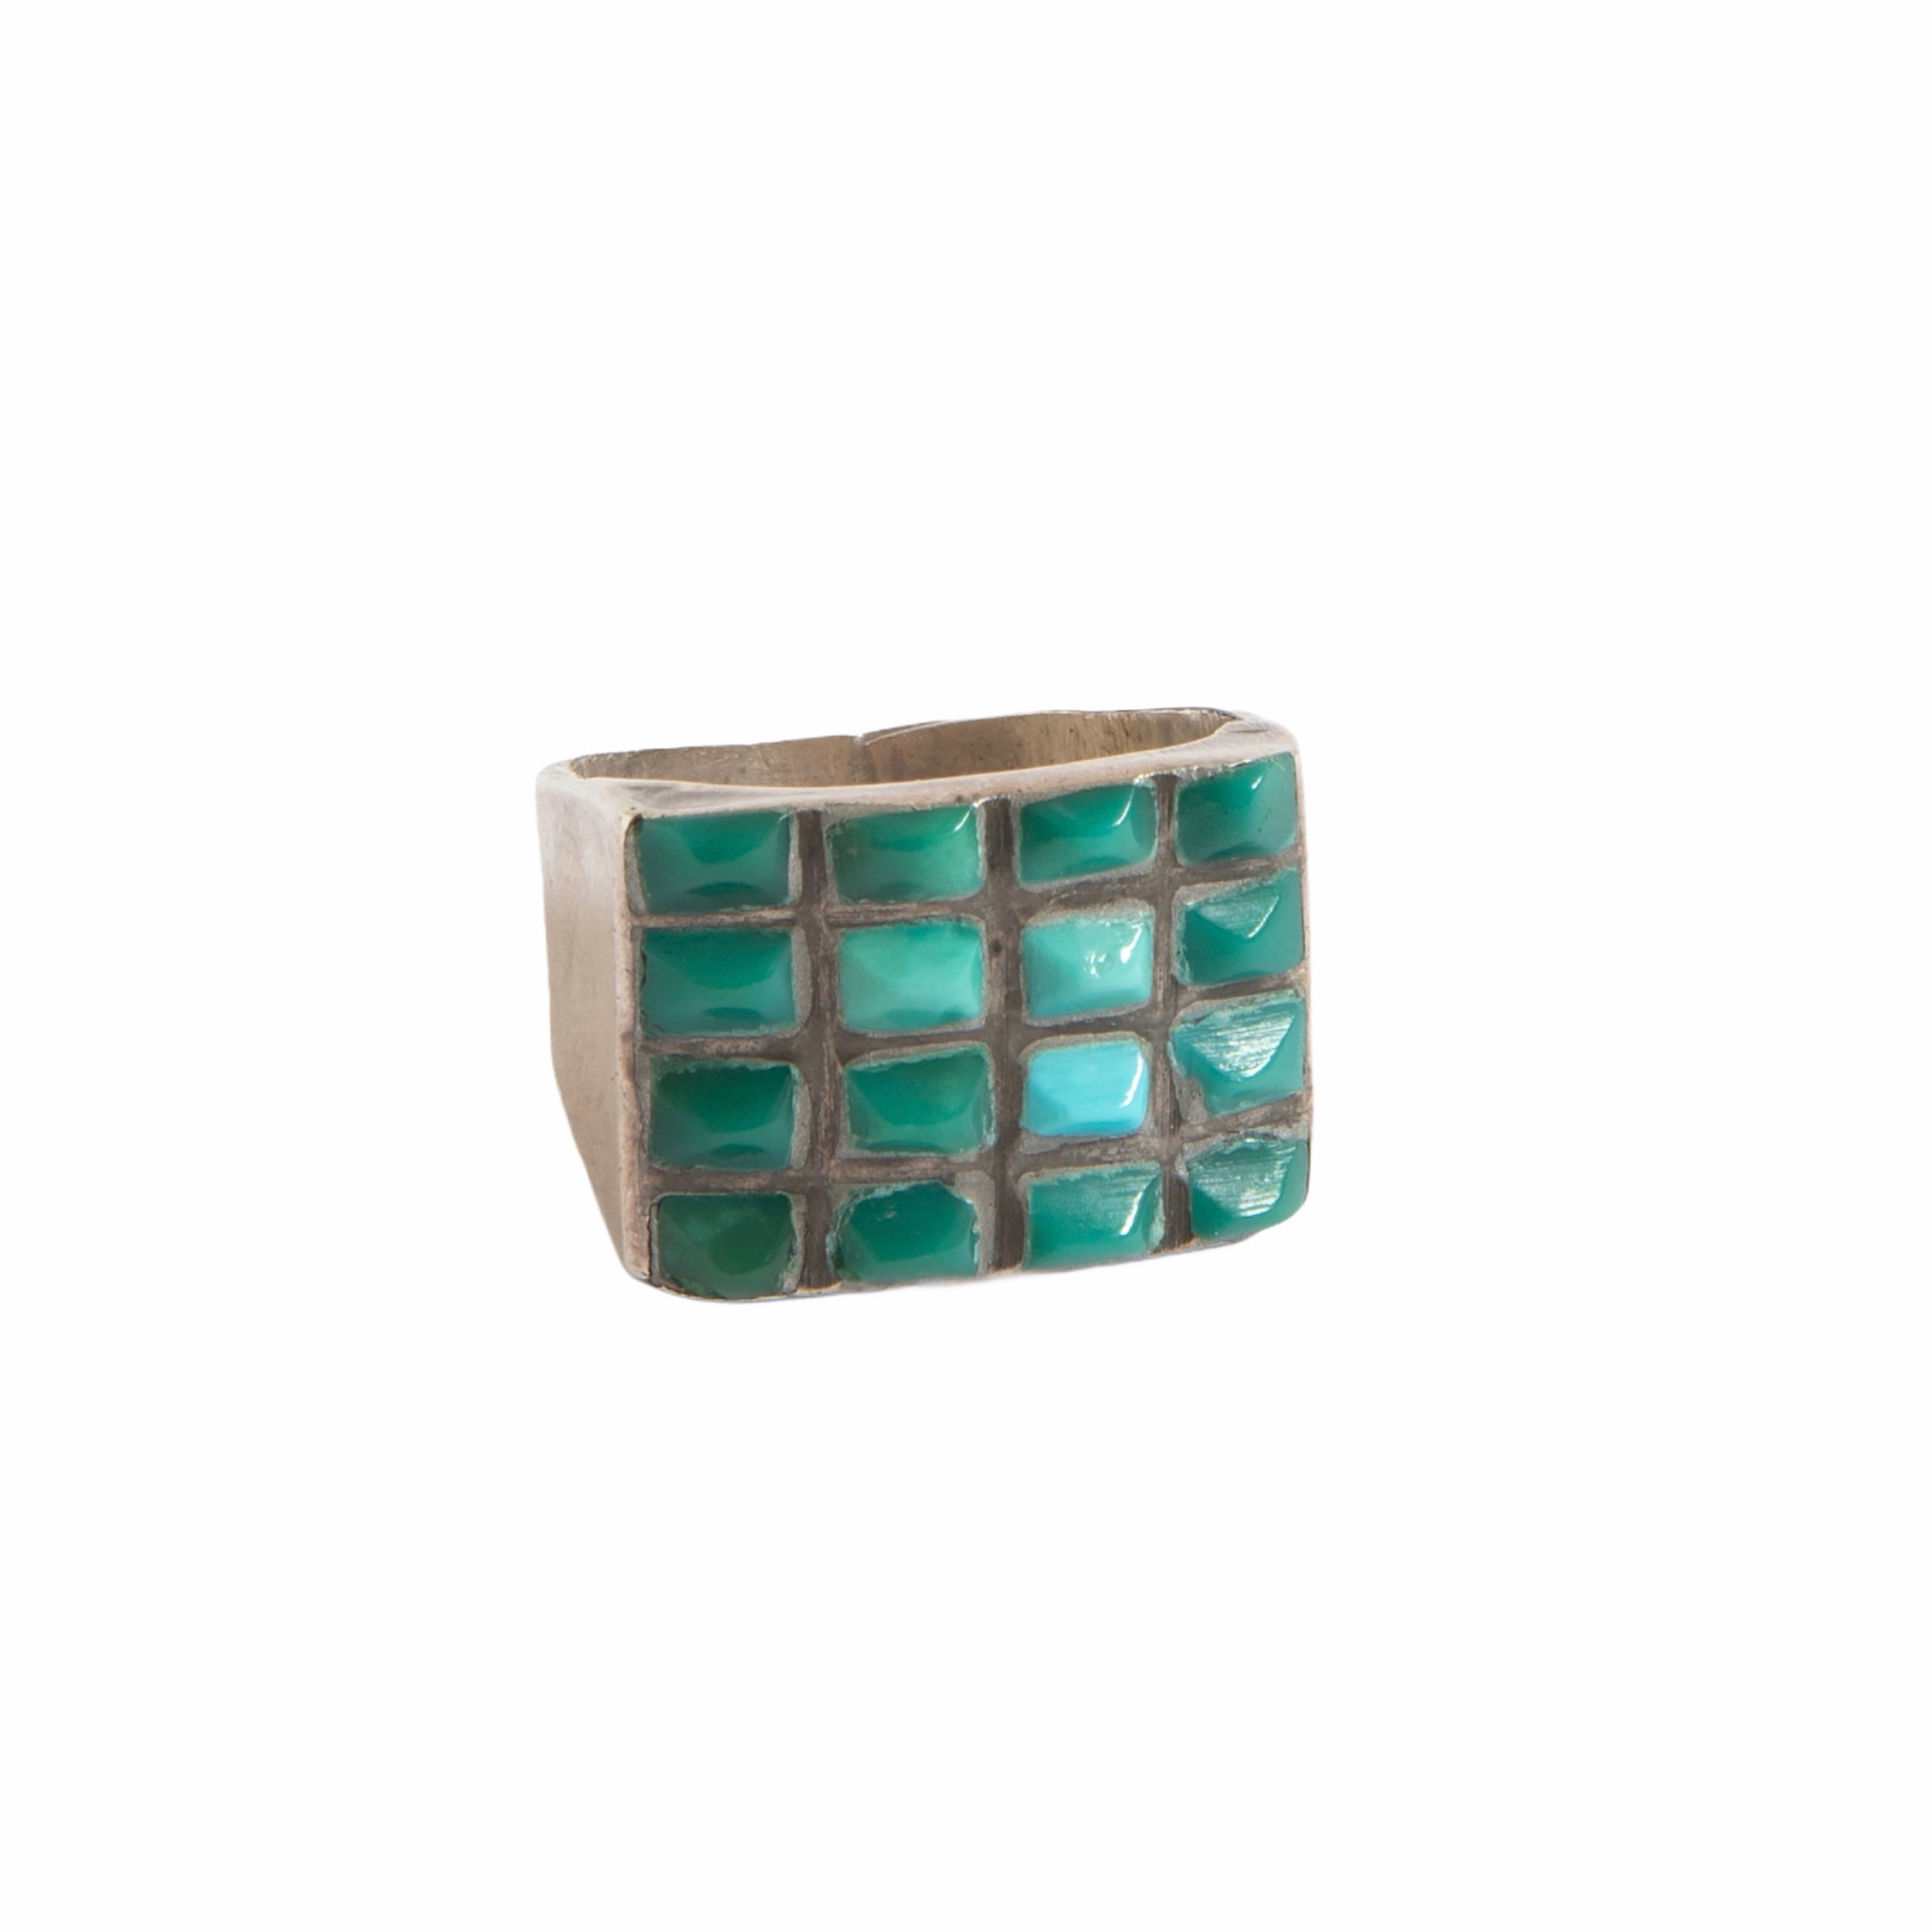 1950s Zuni Channel Cerrios Turquoise Ring 01